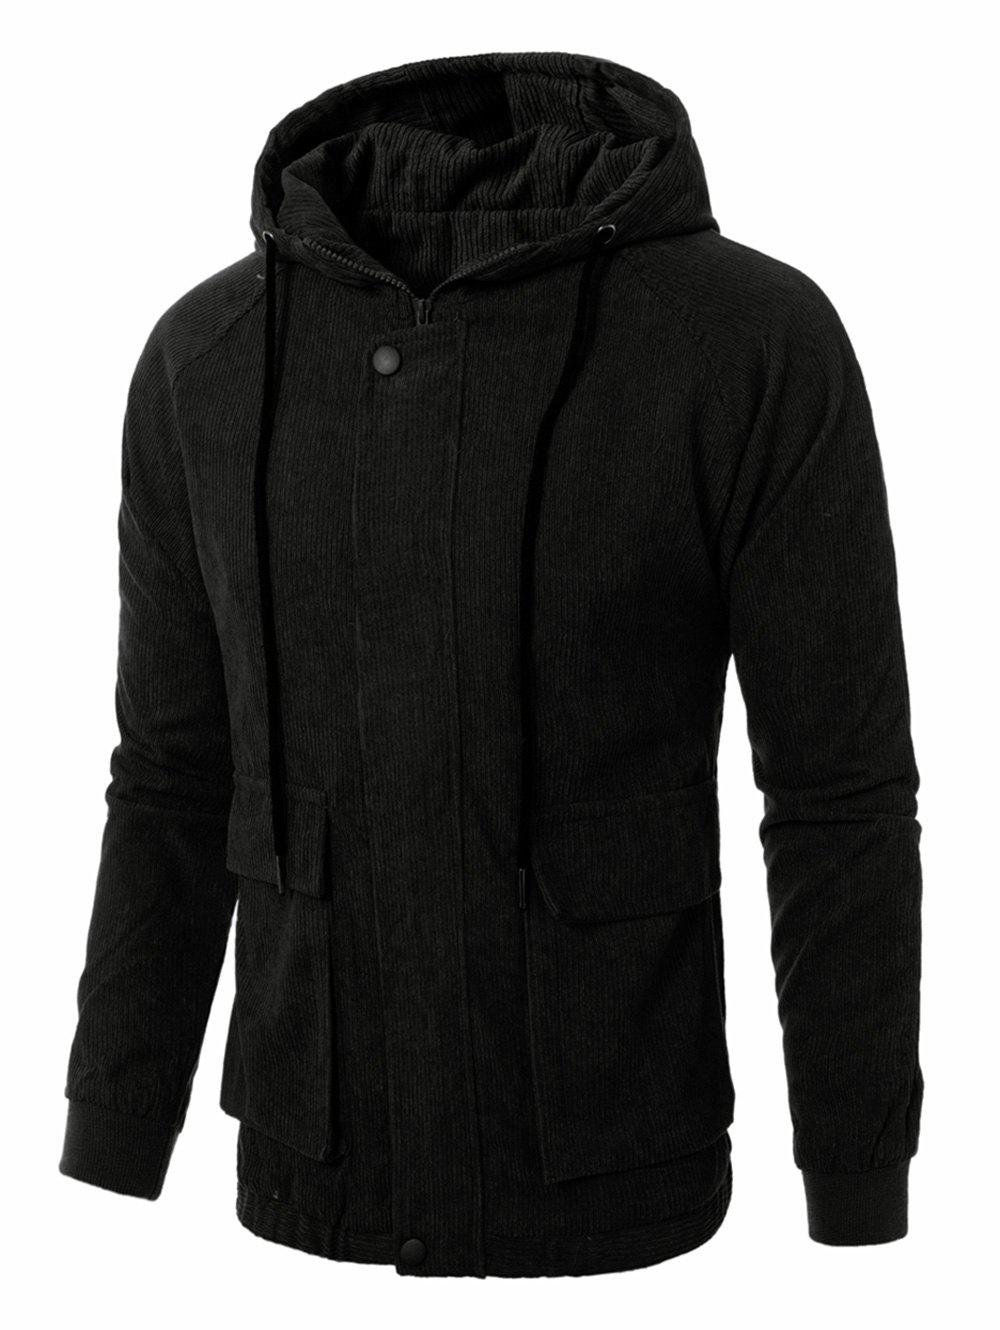 Cheap Graphic Embroidered Corduroy Zip Up Jacket